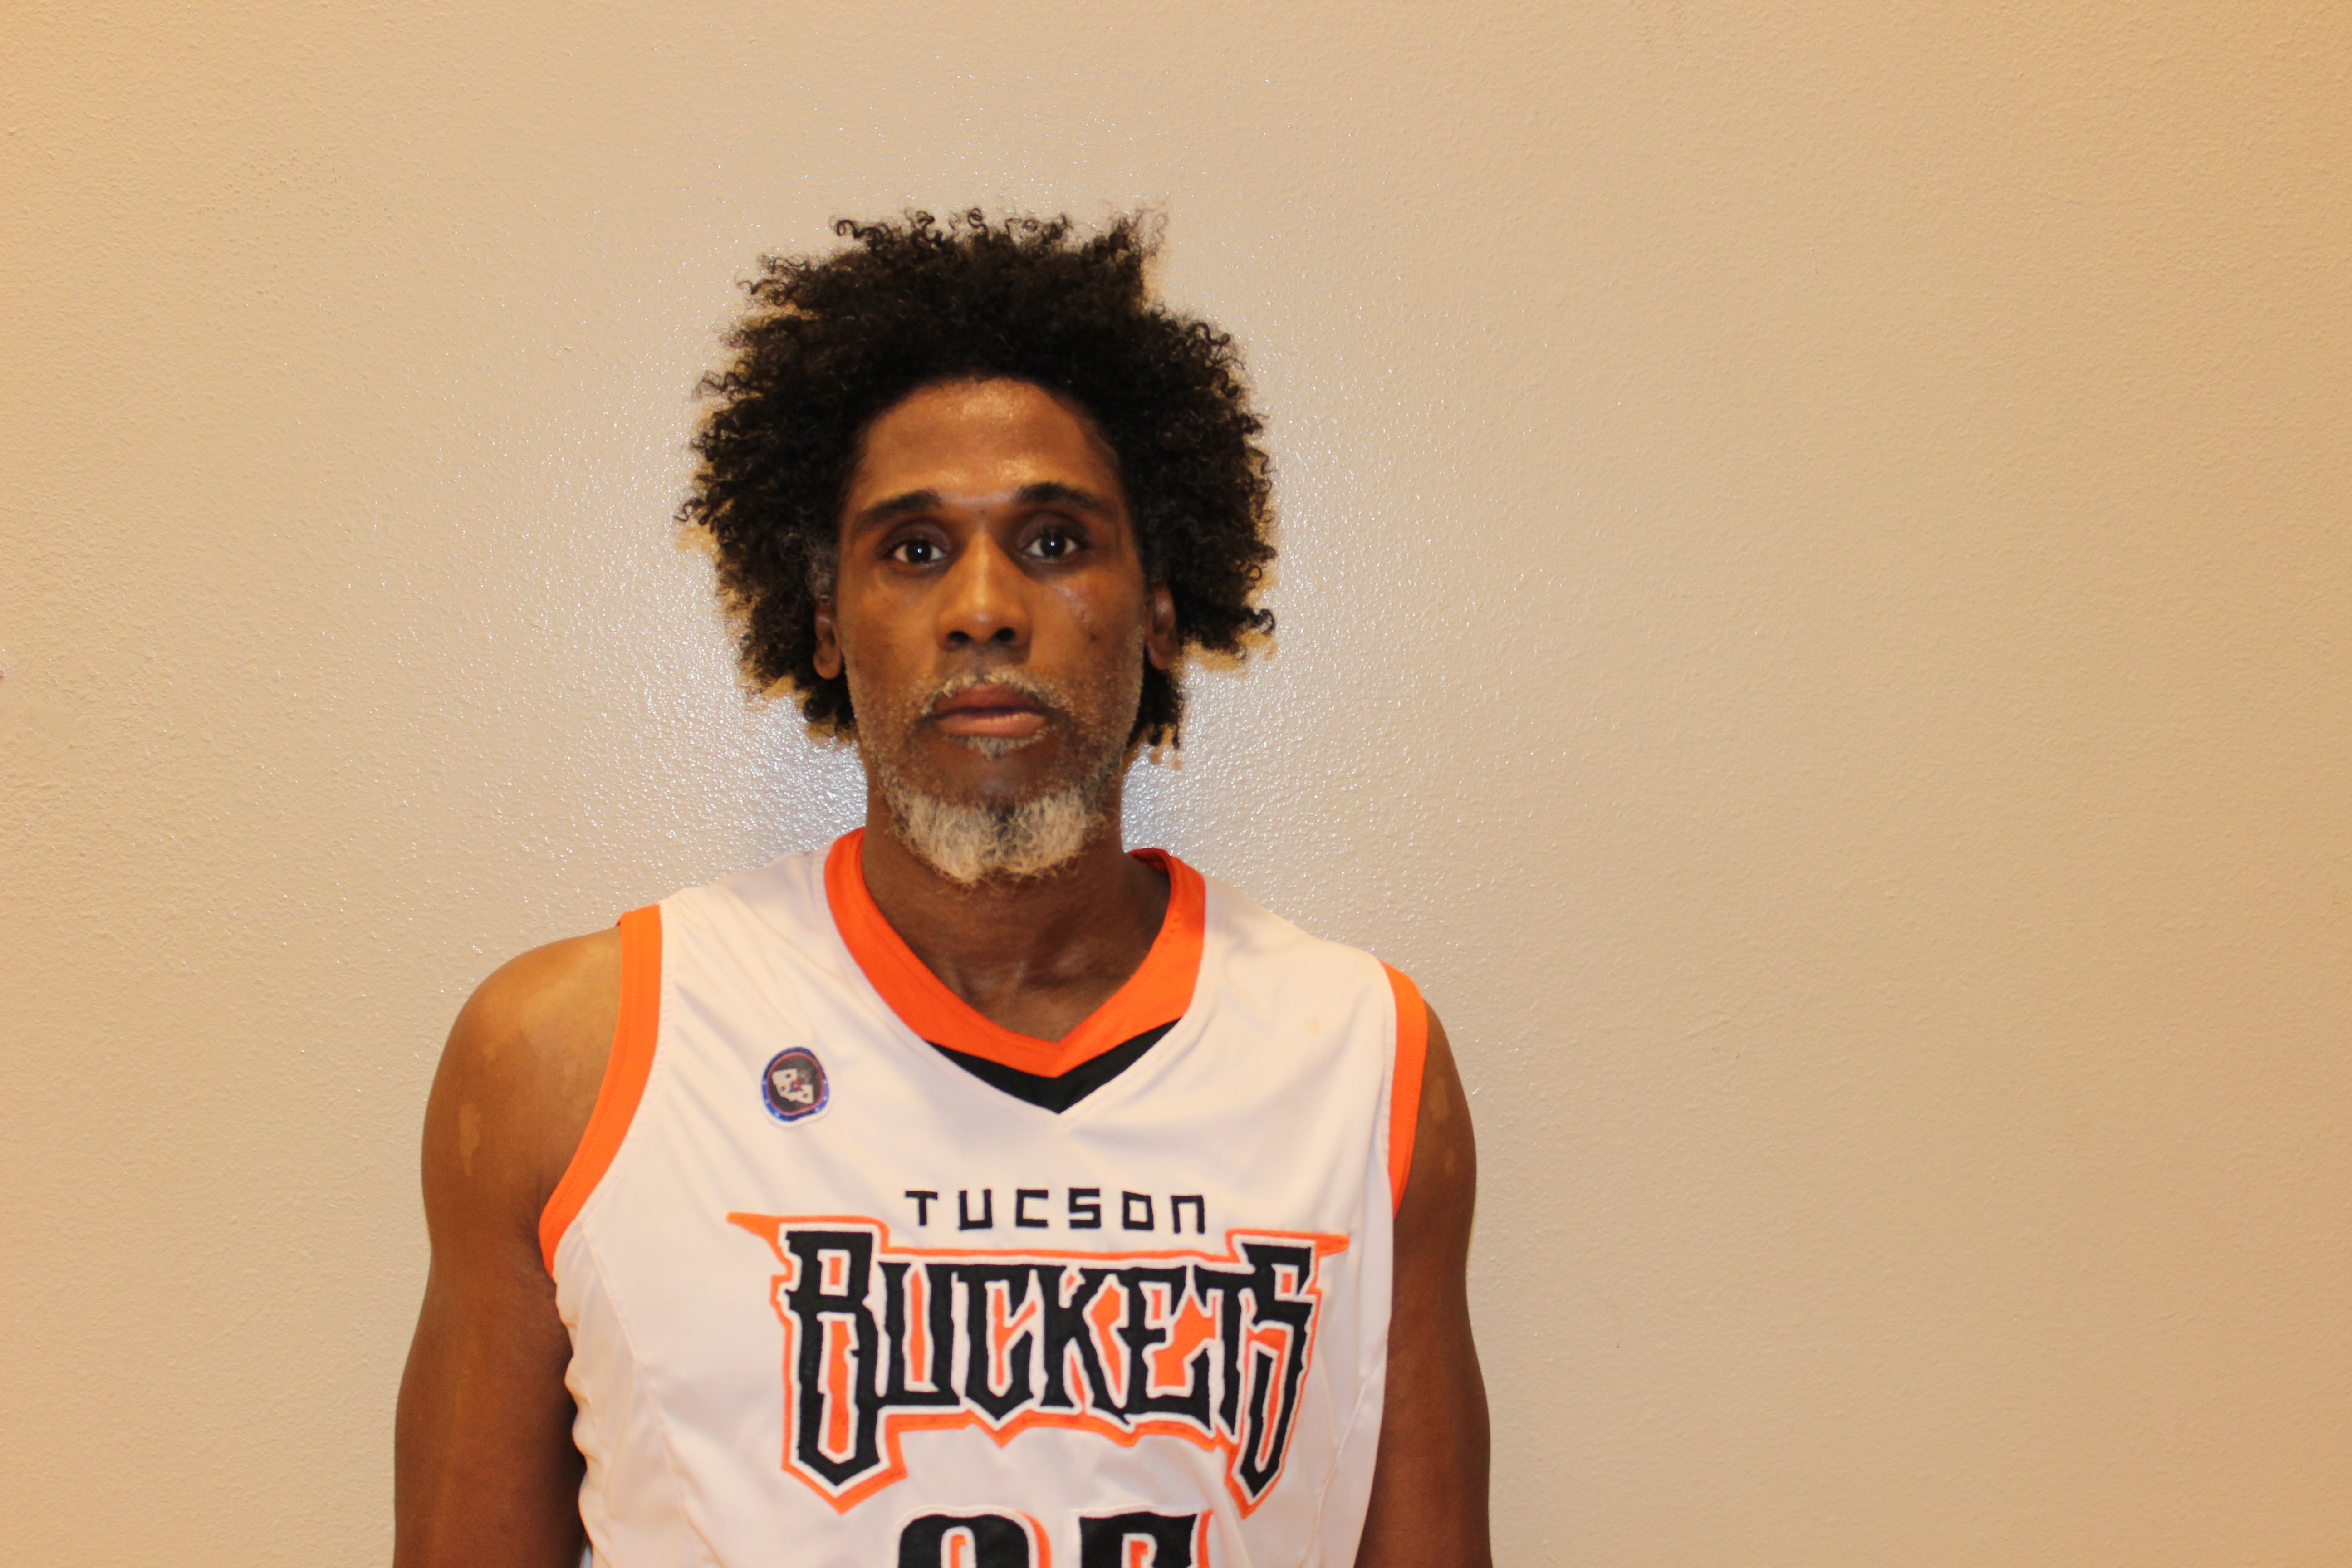 Player Image